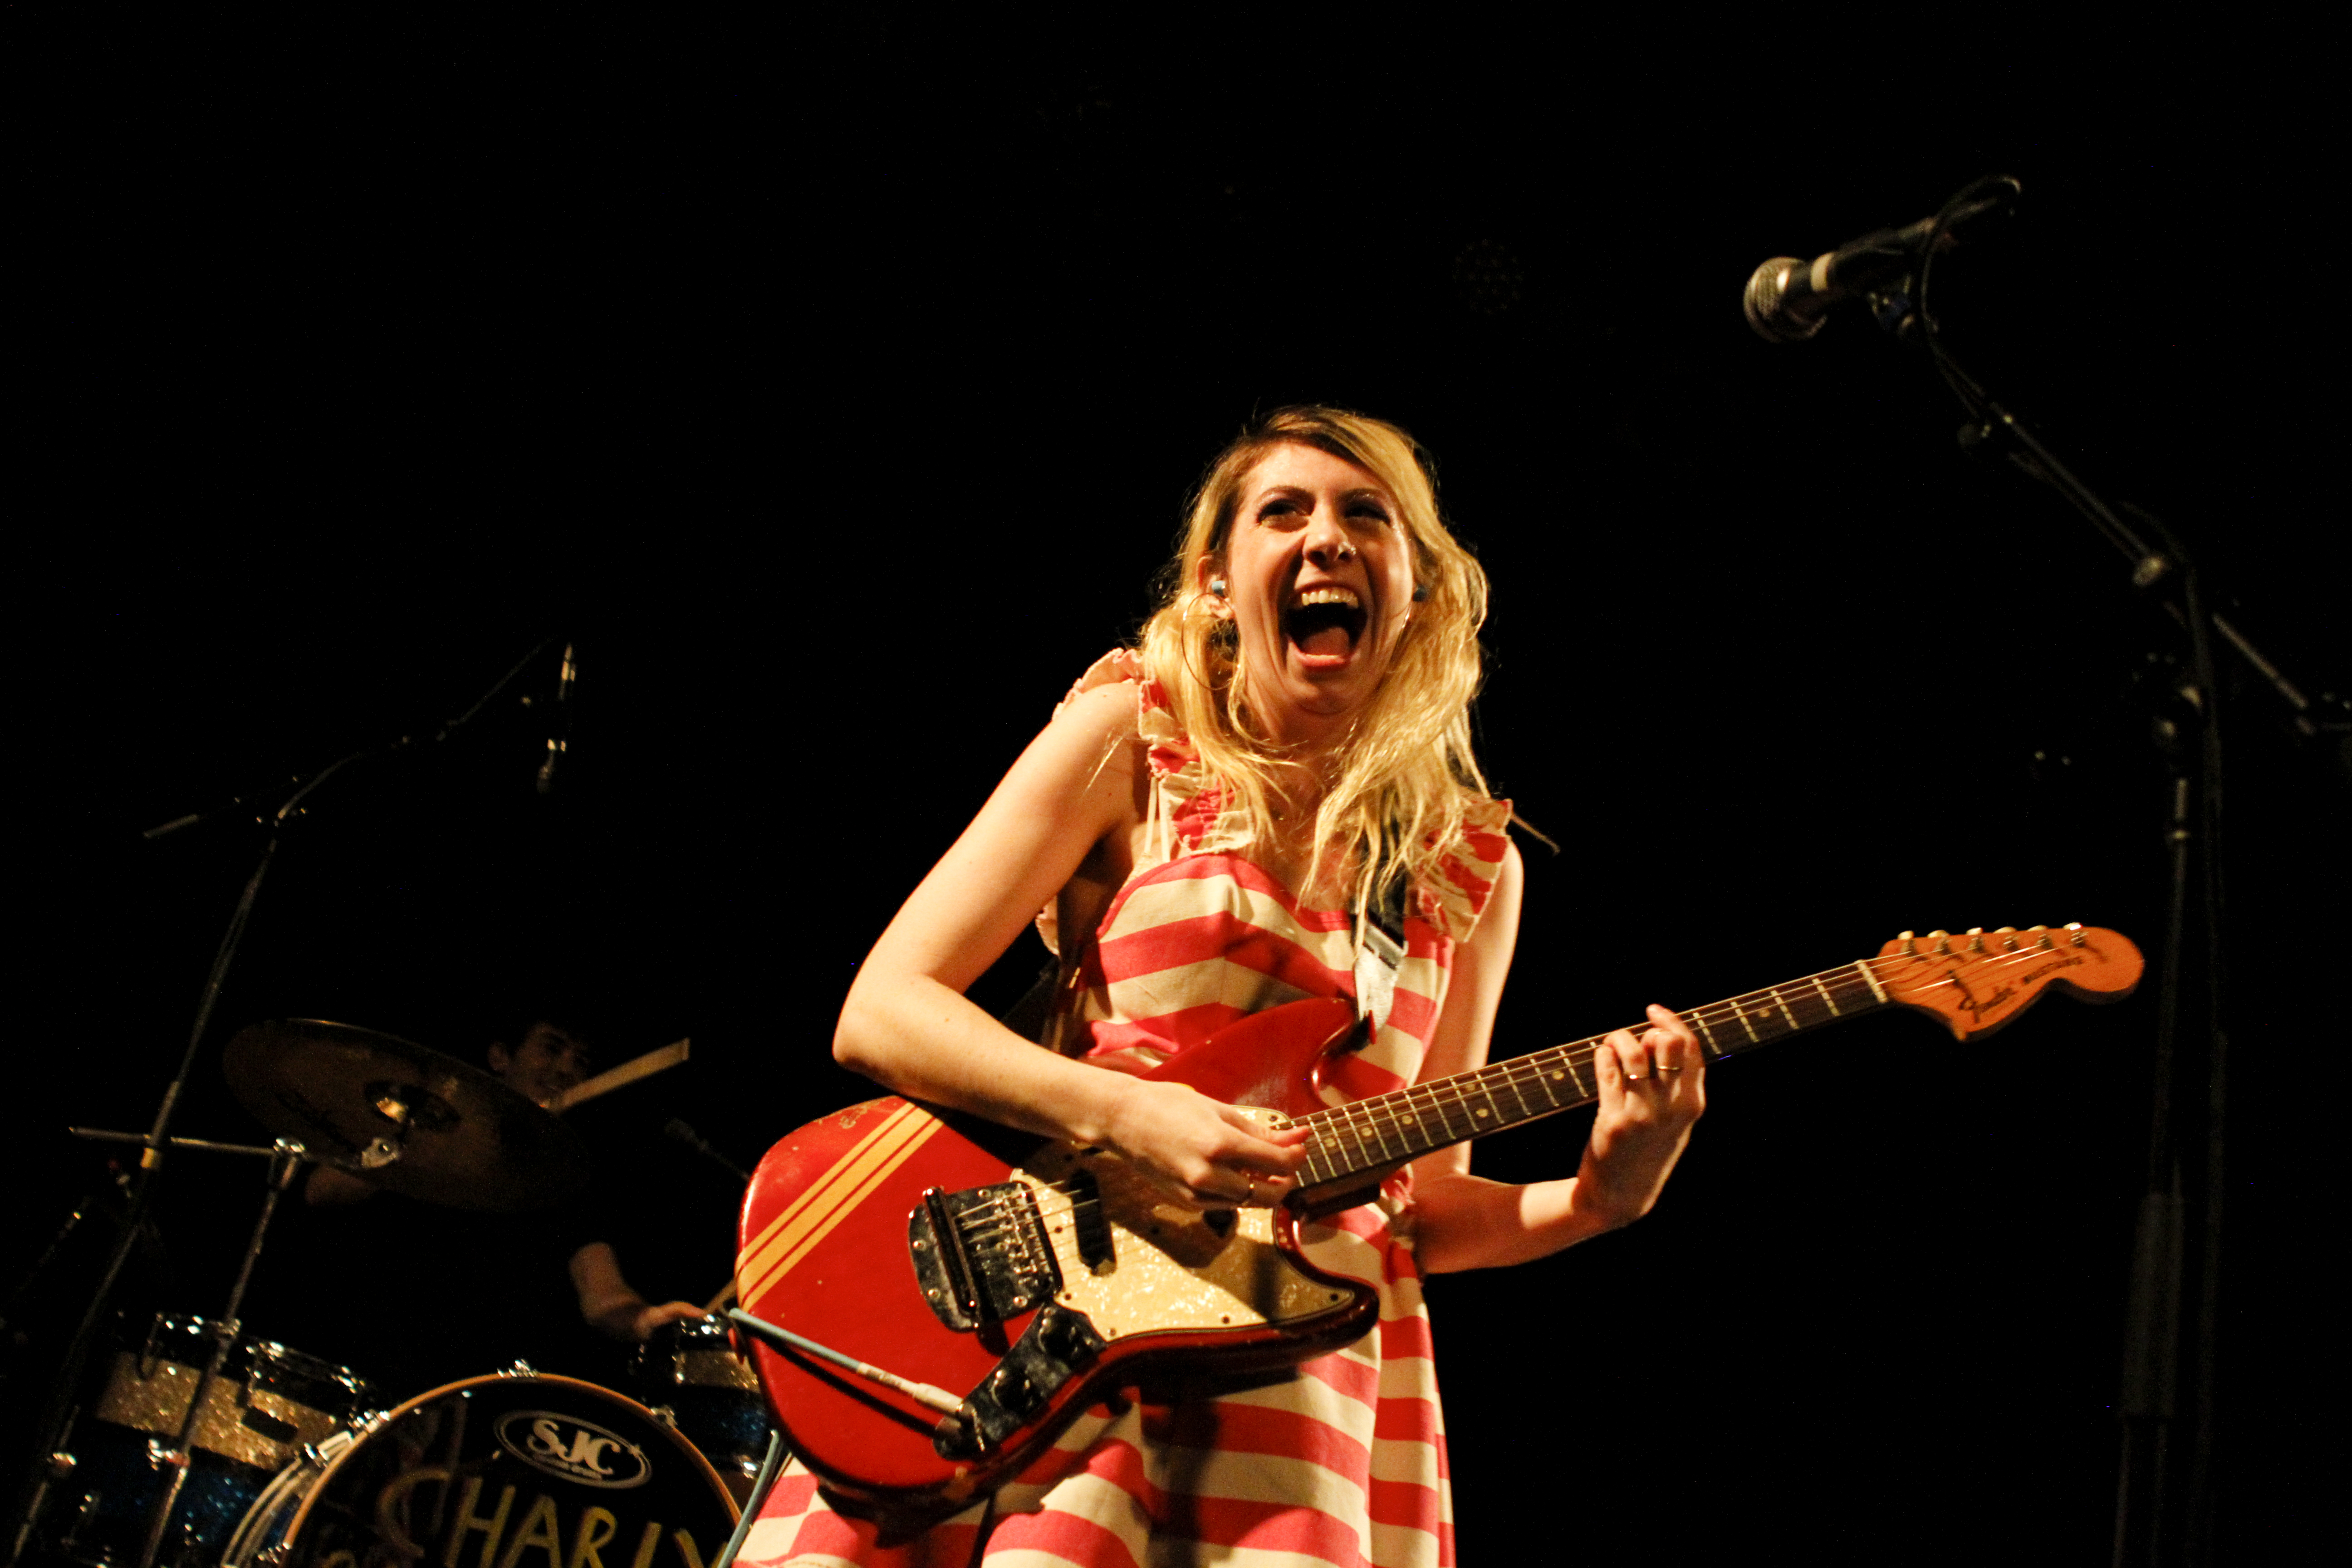 Charly Bliss plays at Music Hall of Williamsburg in Brooklyn, New York on Sept. 28, 2017. (© Michael Katzif - Do not use or republish without prior consent.)